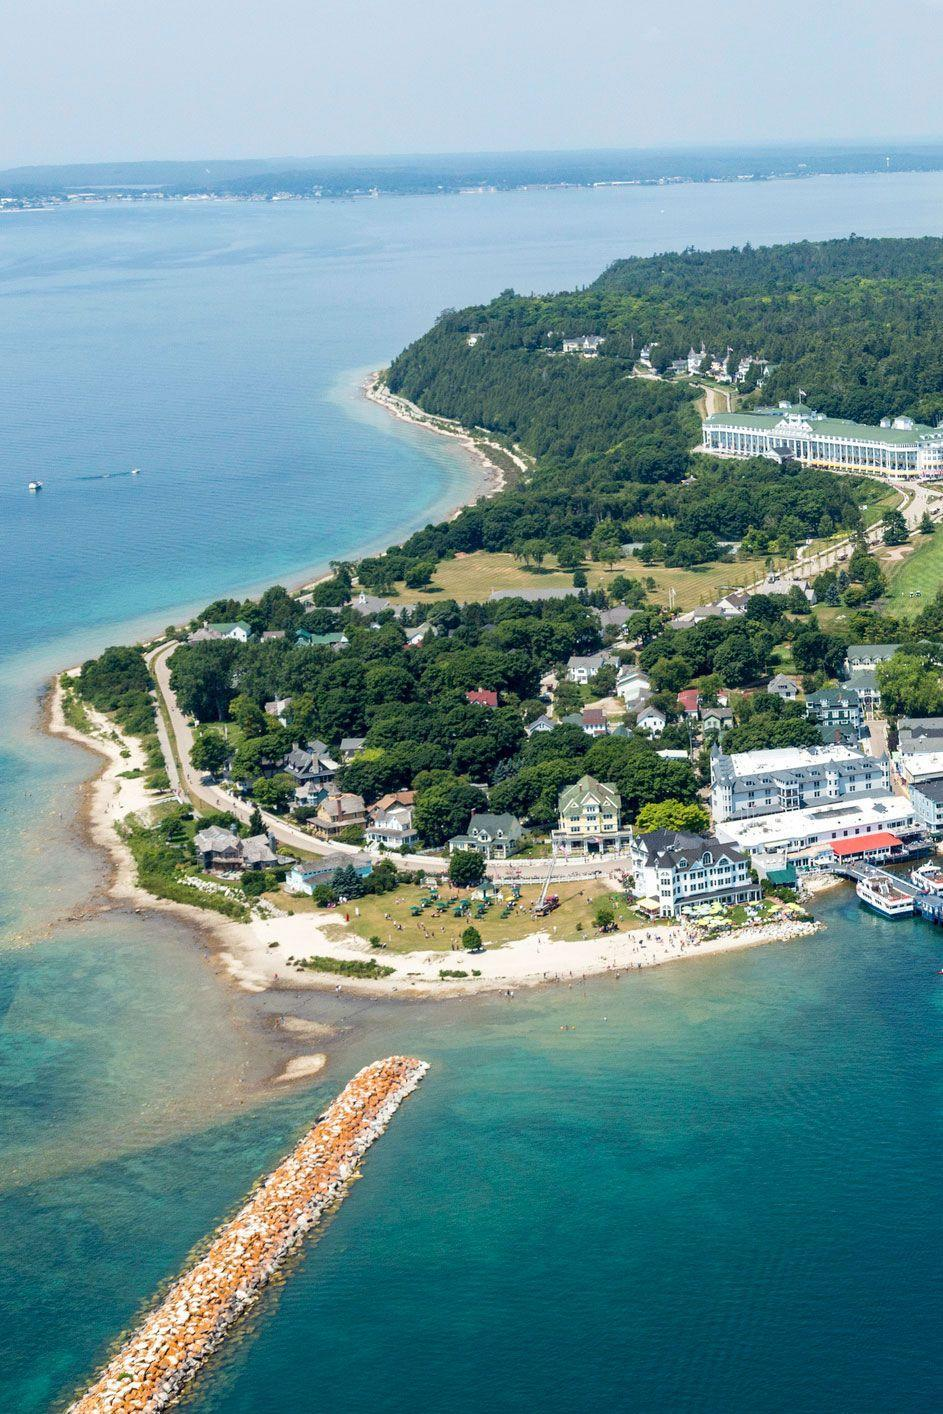 "<p><strong>Where: </strong>Mackinac Island, Michigan</p><p><strong>Why We Love It: </strong>No cars are allowed on <a href=""https://www.countryliving.com/life/travel/g4135/american-islands/"" rel=""nofollow noopener"" target=""_blank"" data-ylk=""slk:this small island"" class=""link rapid-noclick-resp"">this small island</a> on the strait between Michigan's upper and lower peninsulas, making it an idyllic summer getaway.</p>"